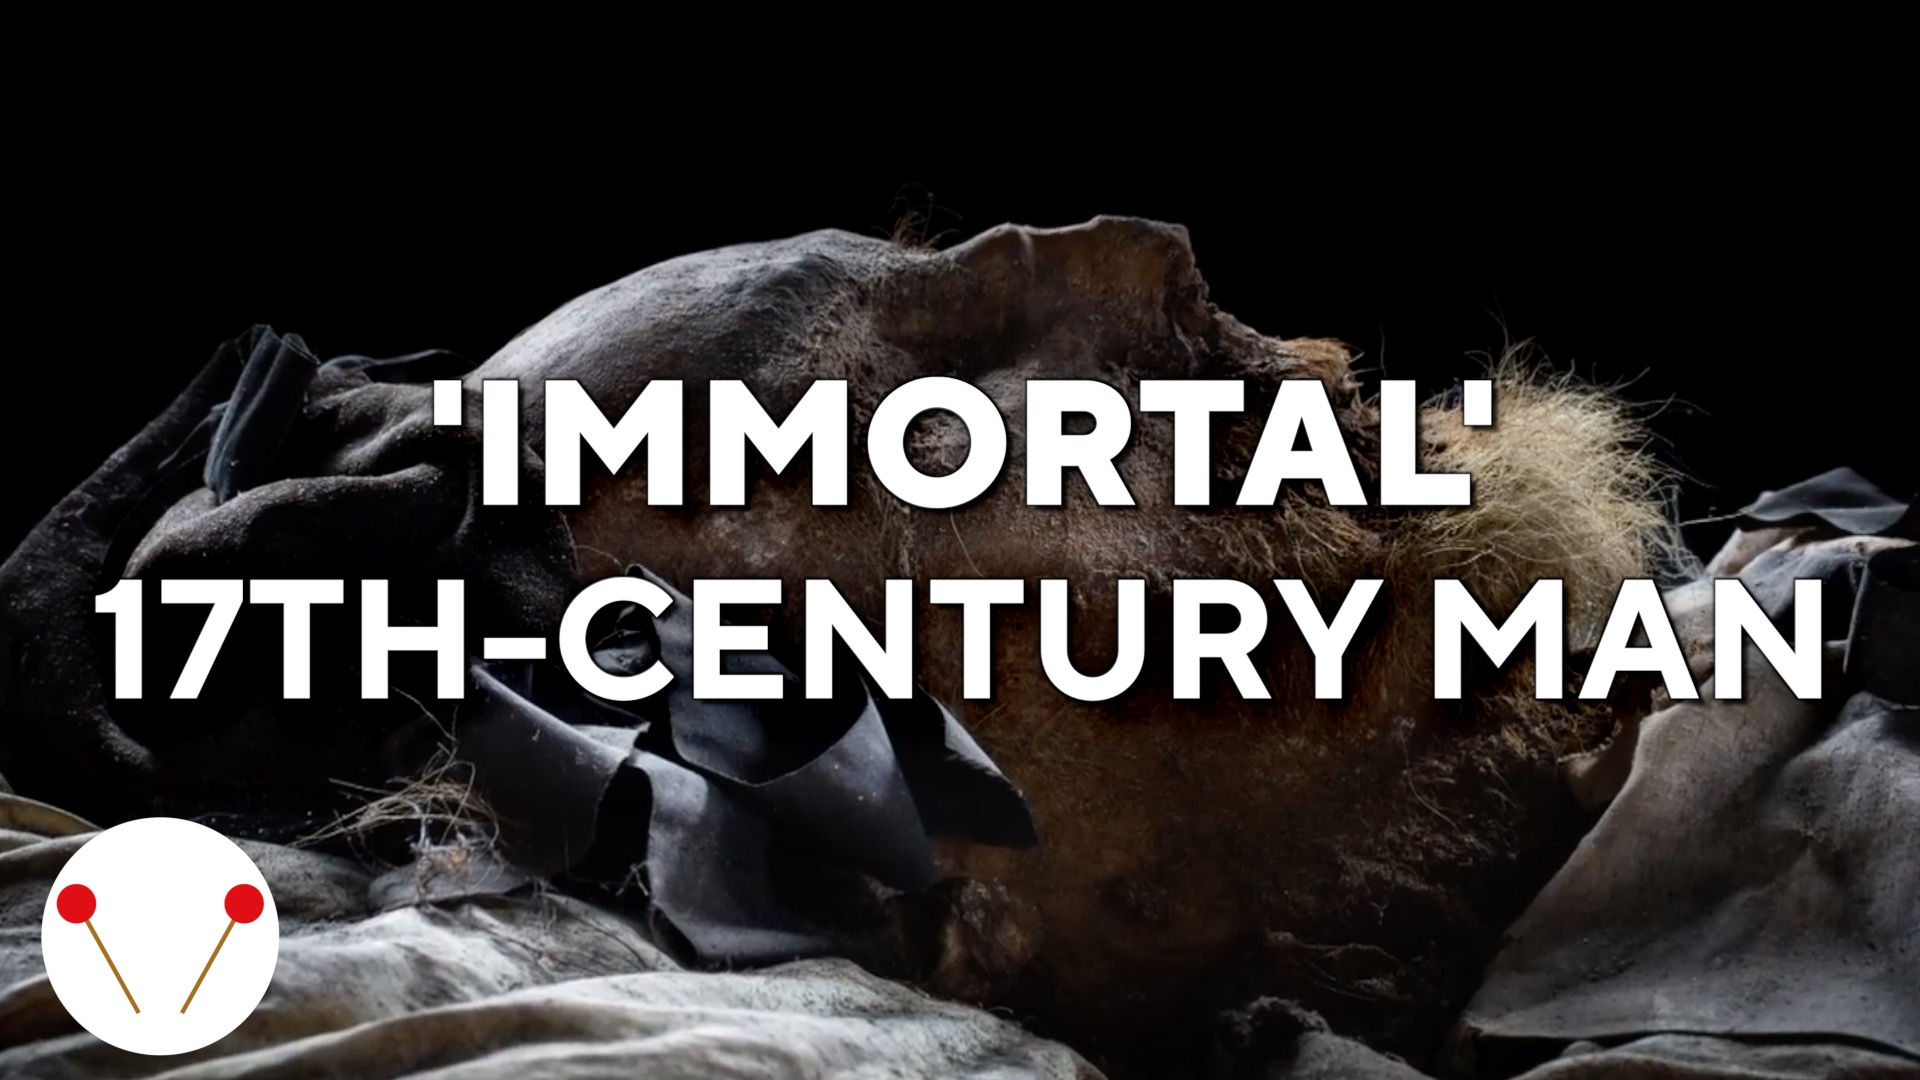 The 'immortal' 17th century man